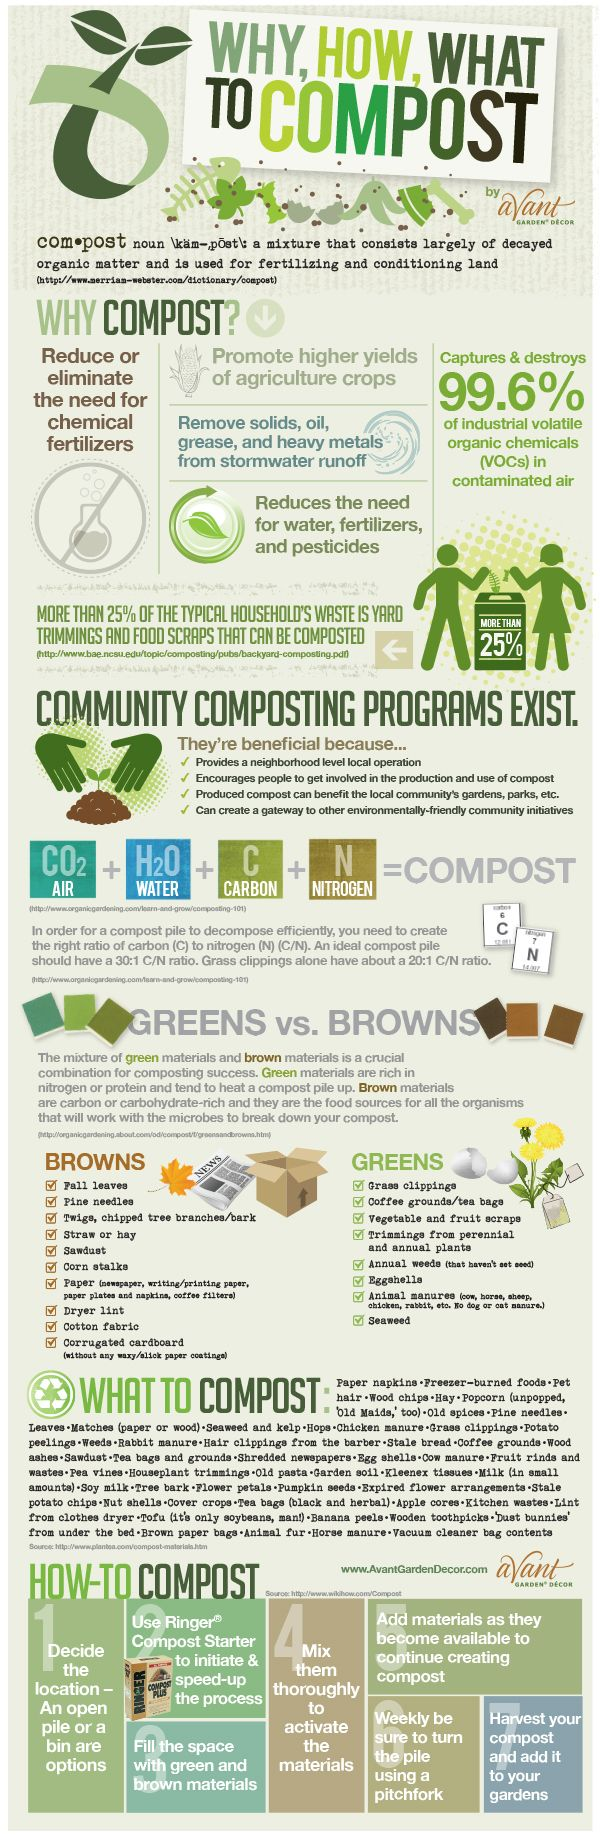 Why Compost?